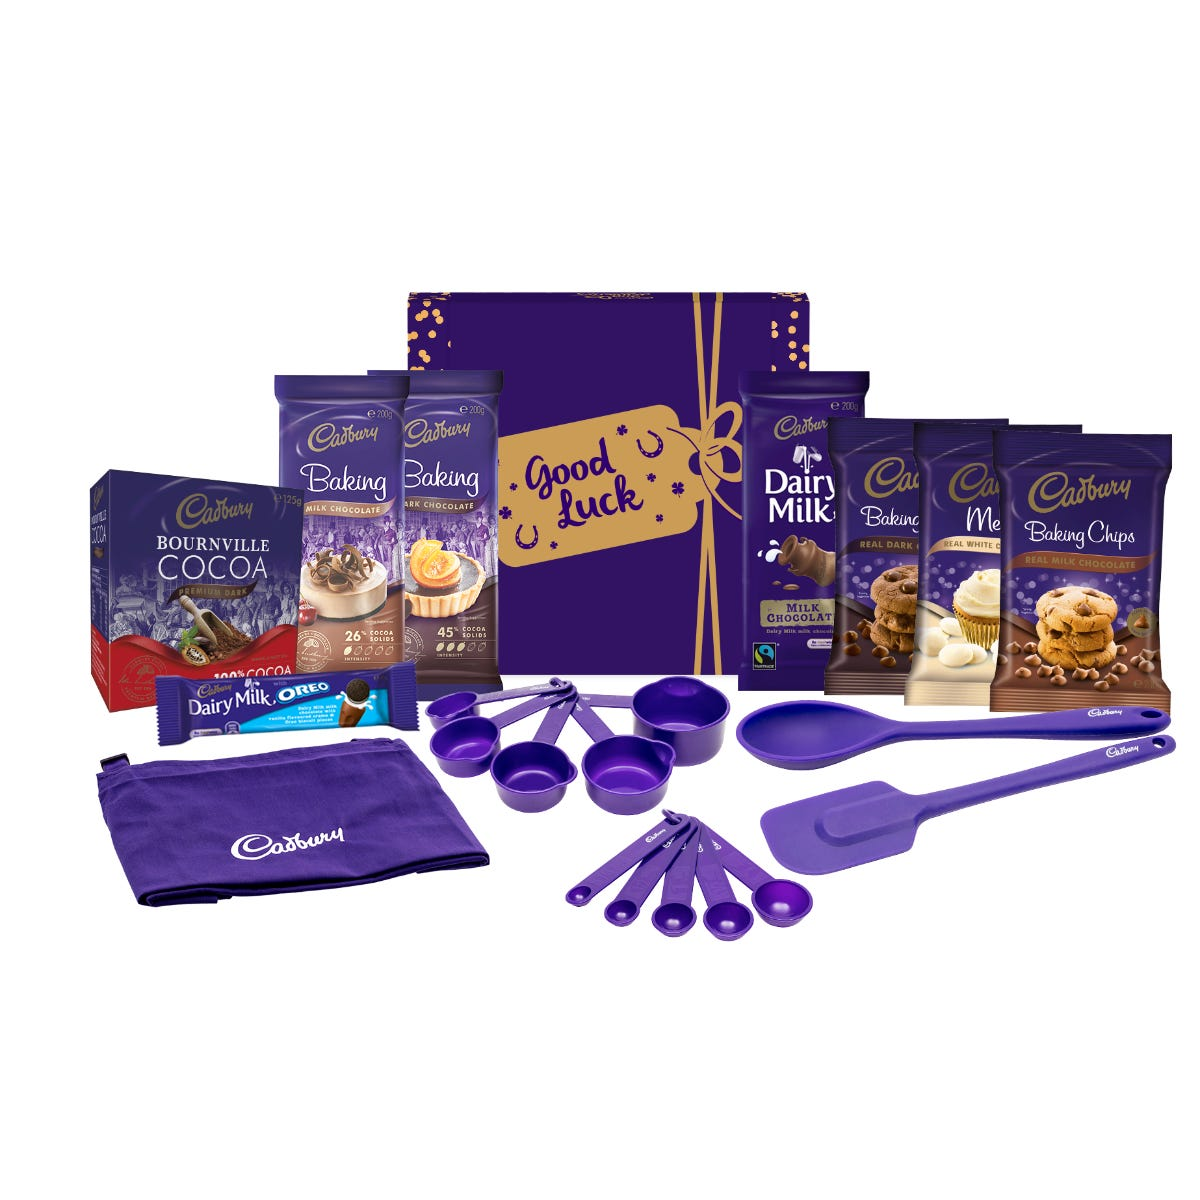 Cadbury Baking Hamper - Good Luck